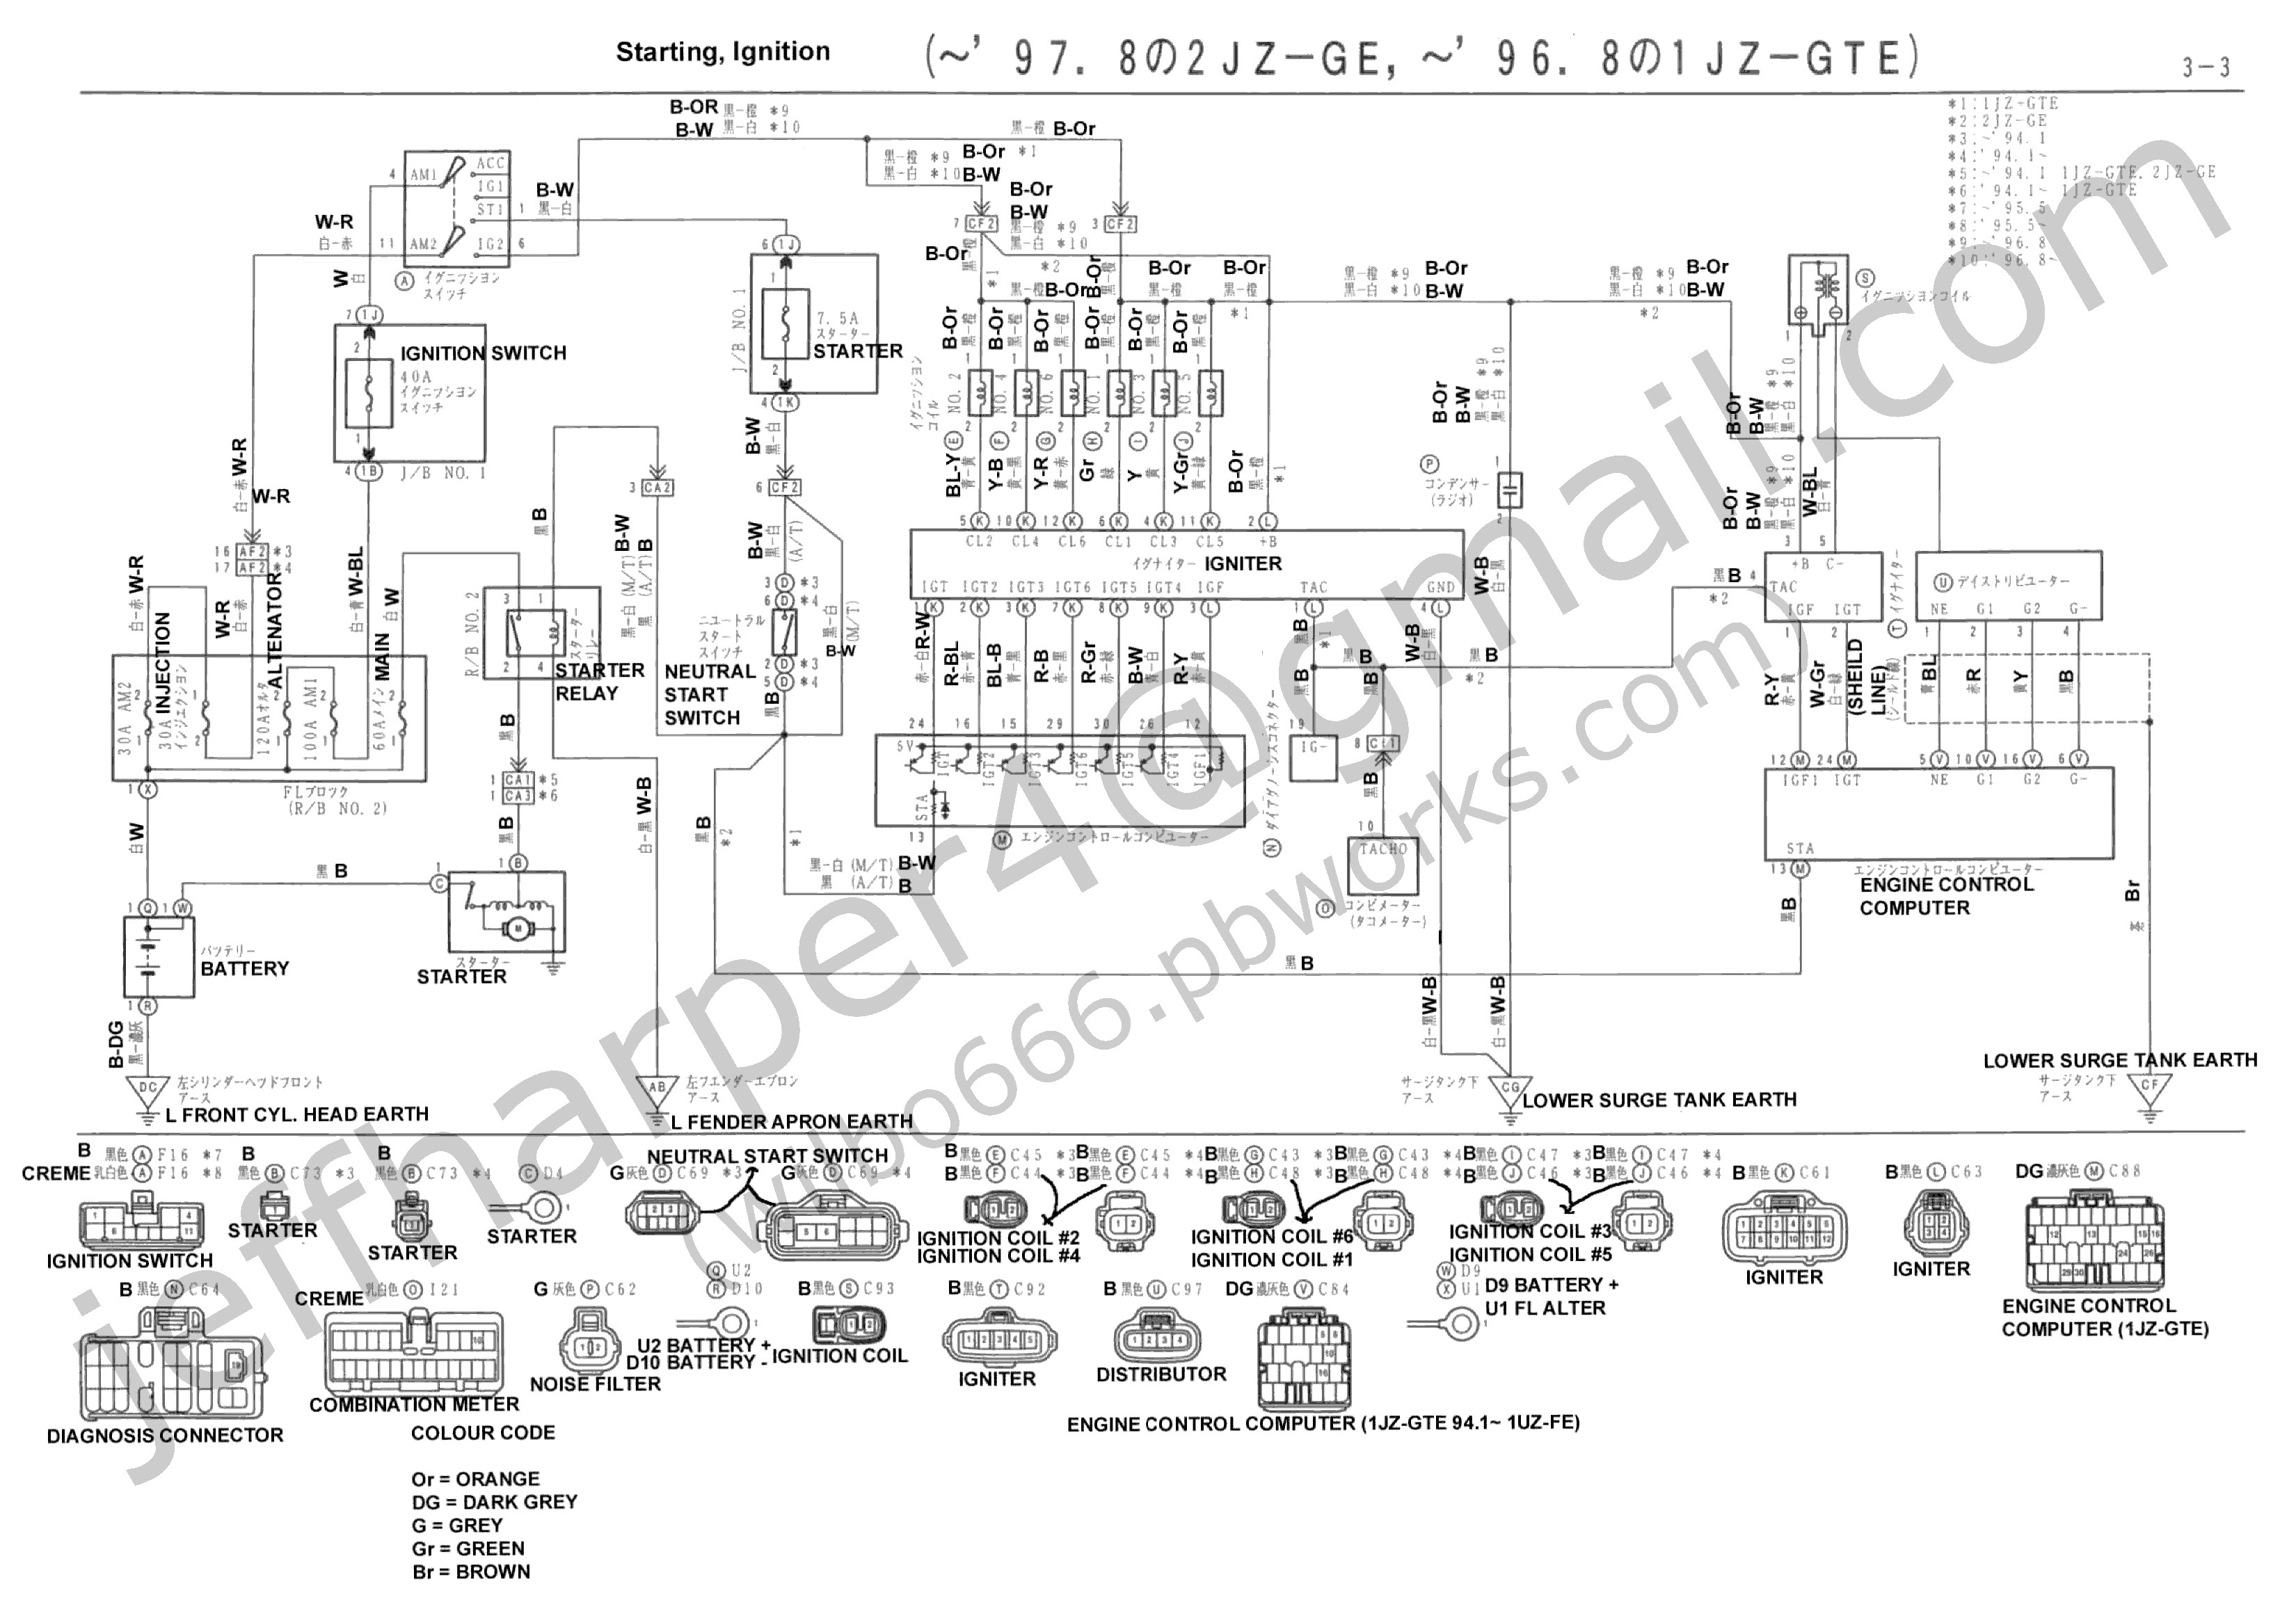 Toyota Igniter Wiring Diagram Trusted Diagrams Ignition Coil Image